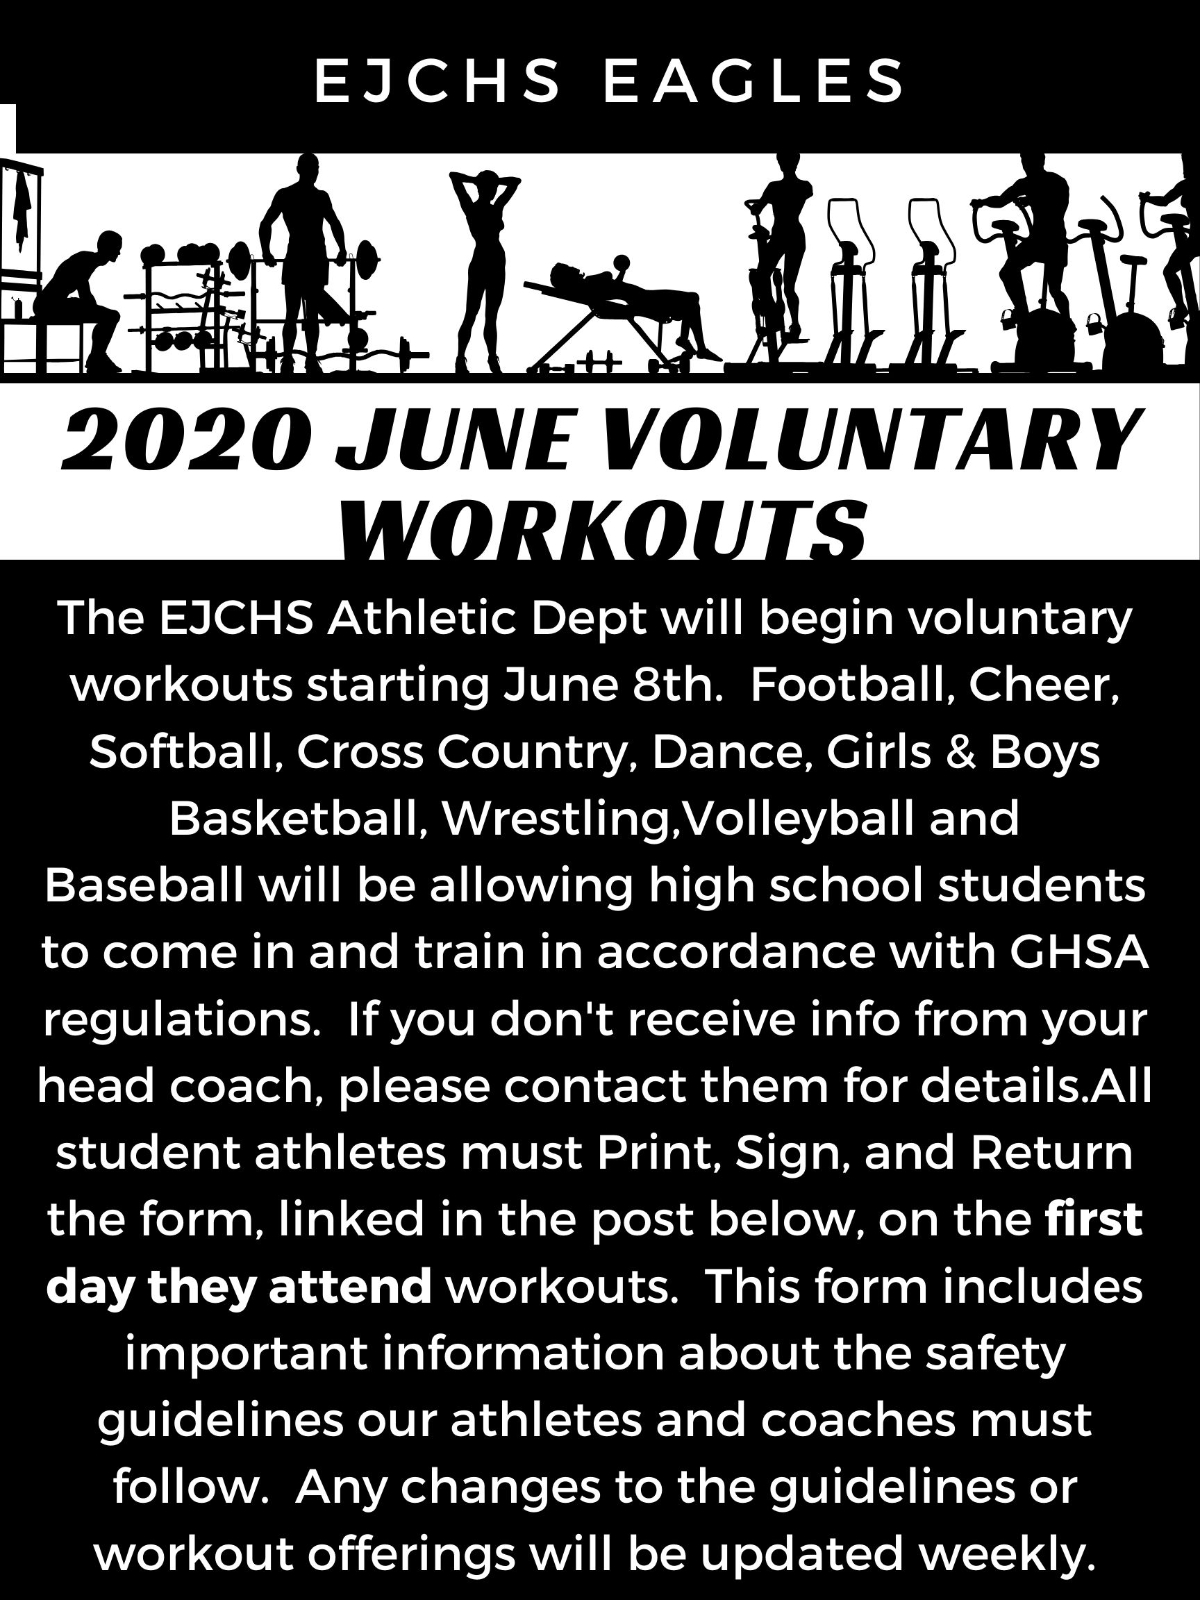 Voluntary Summer workouts flyer